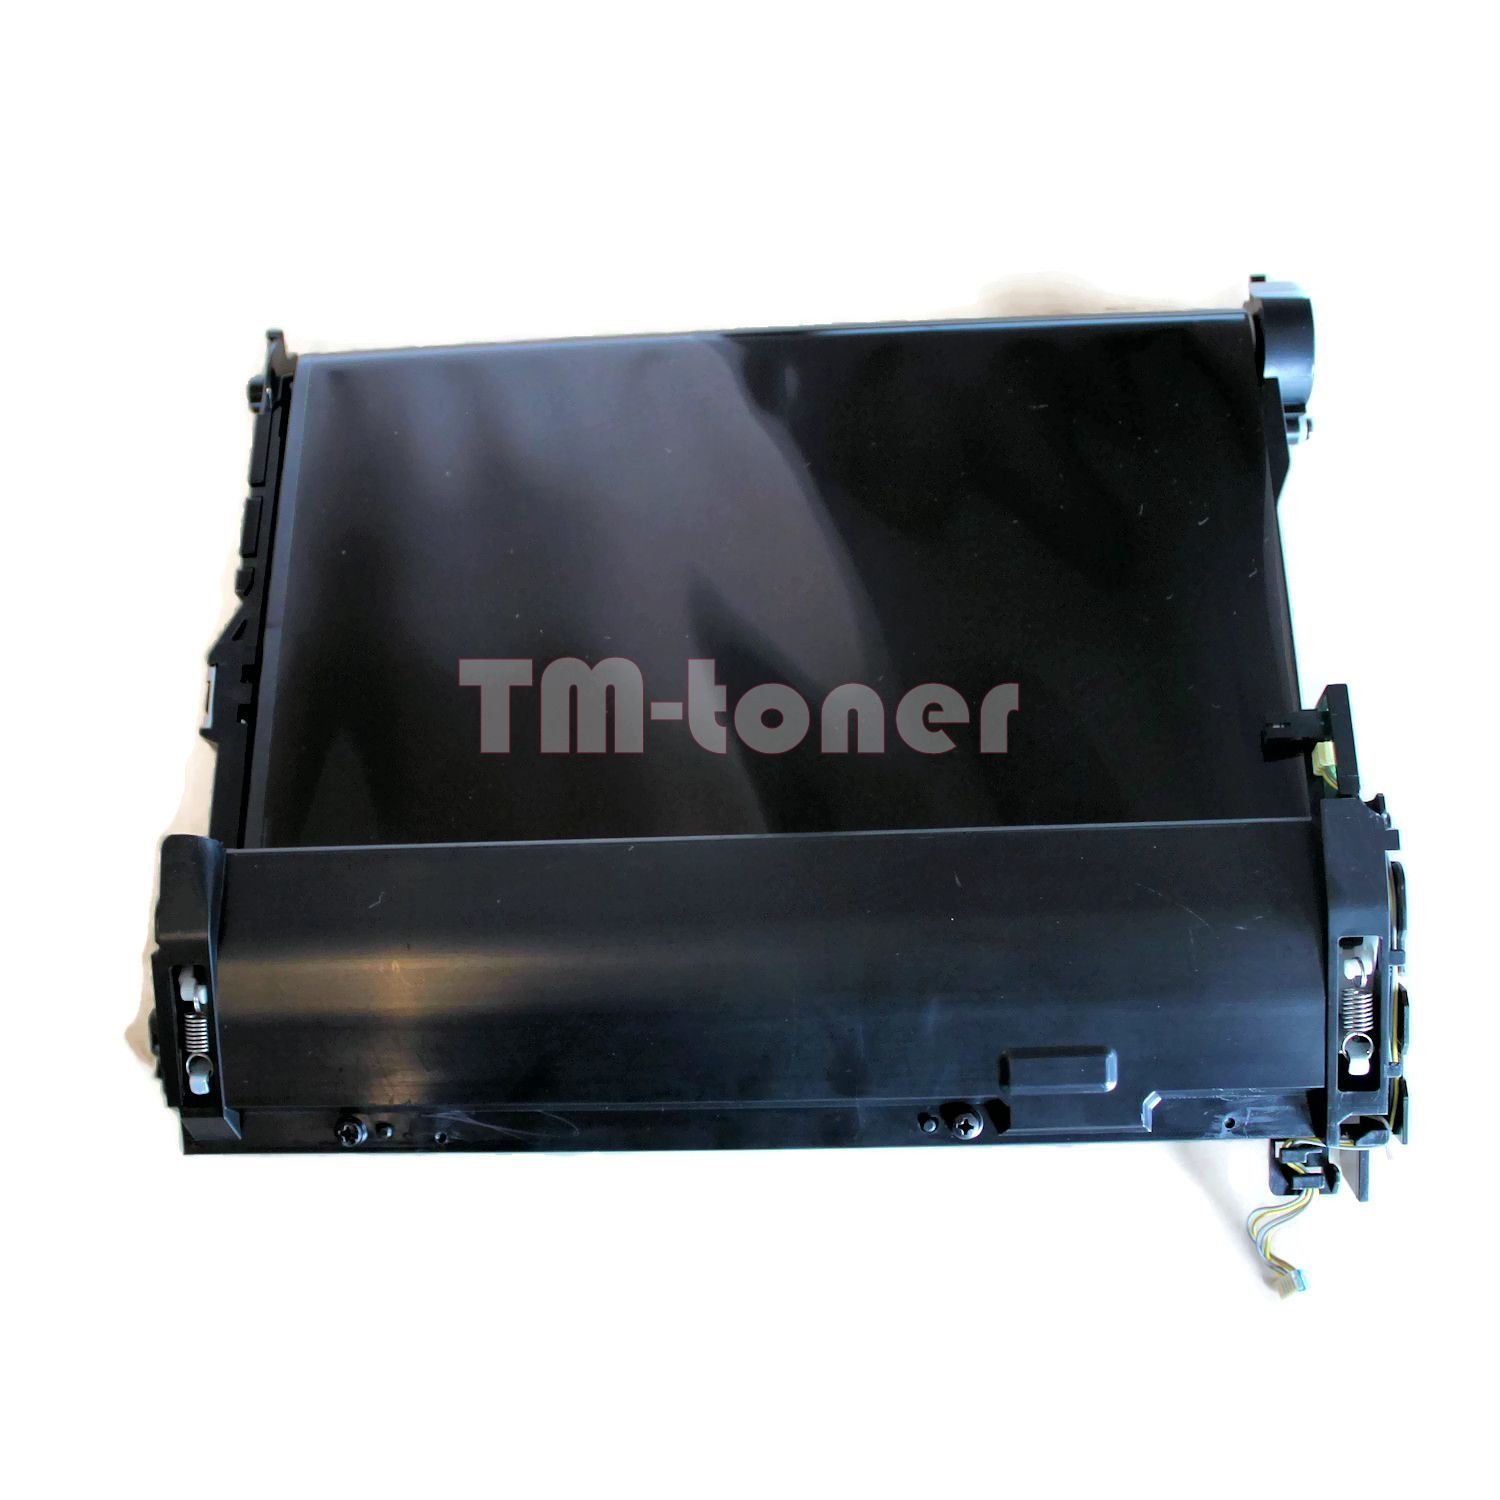 Remanufactured JC96-06292A Transfer Belt Unit for Samsung CLP365 CLP365W CLX3305 CLX3305FN CLX3305FW CLX3305W SLC410W SLC460FW SLC460W by TM-toner (Image #2)